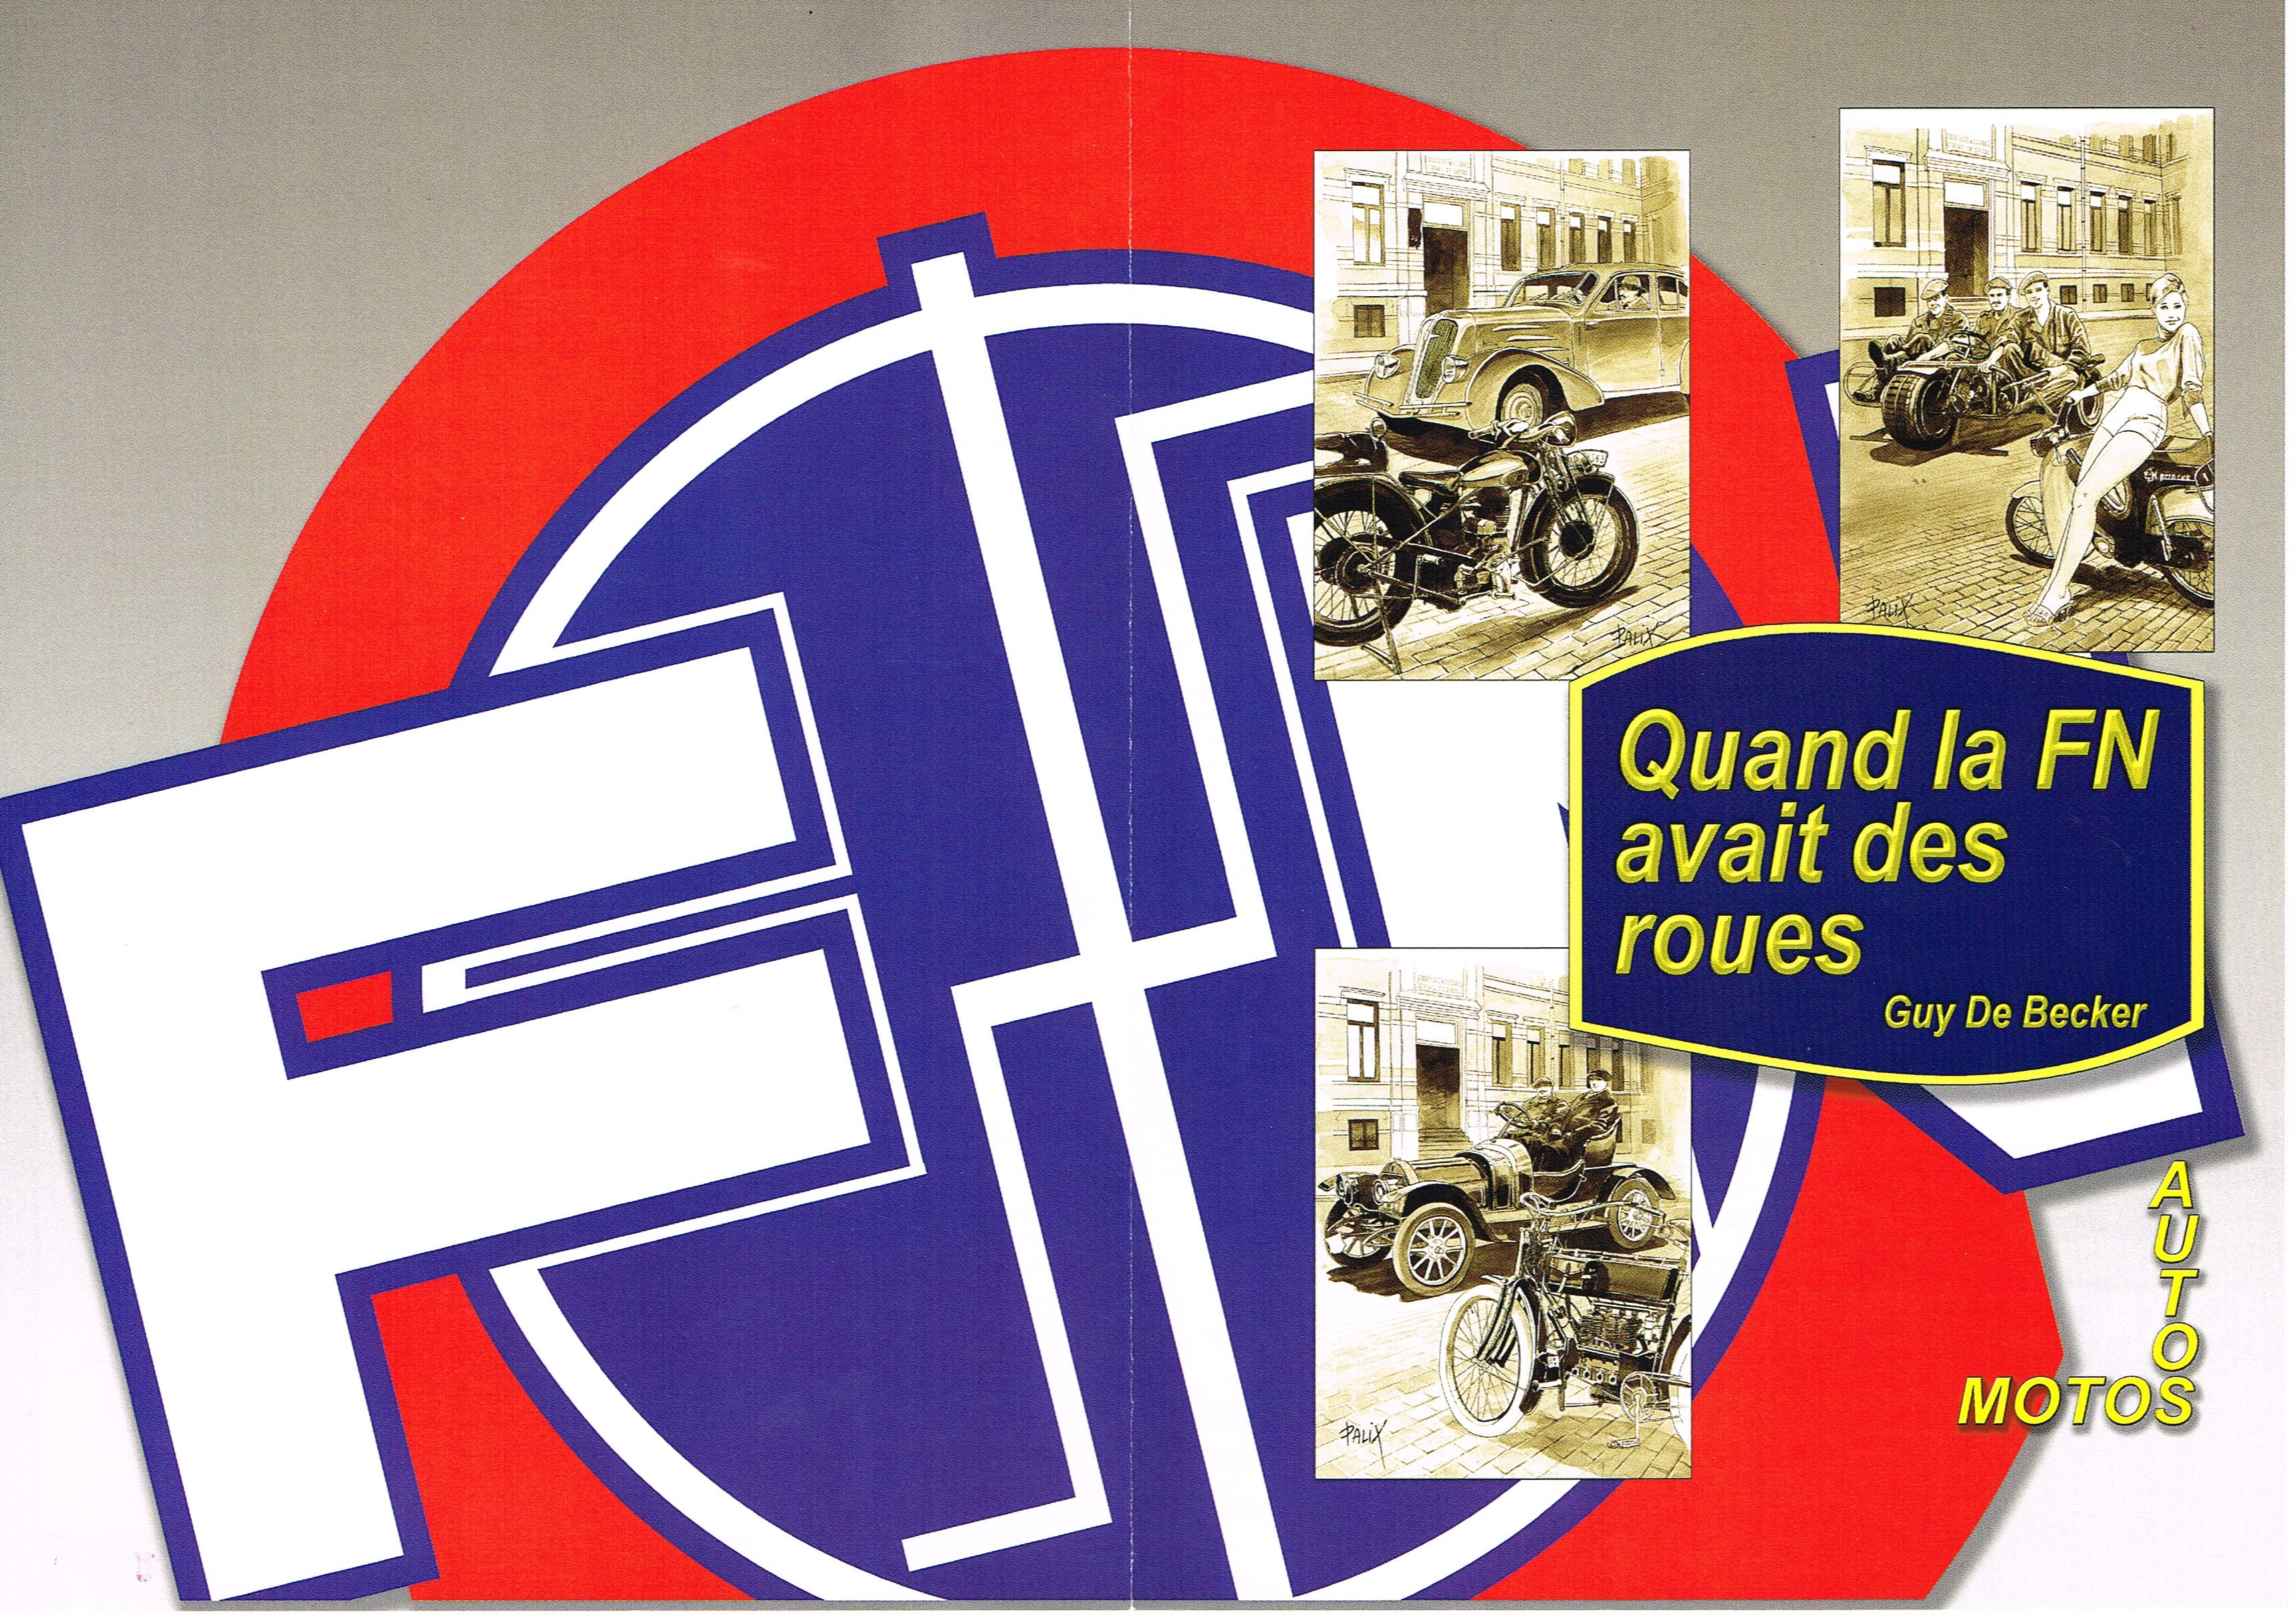 FN couverture 2013.jpg